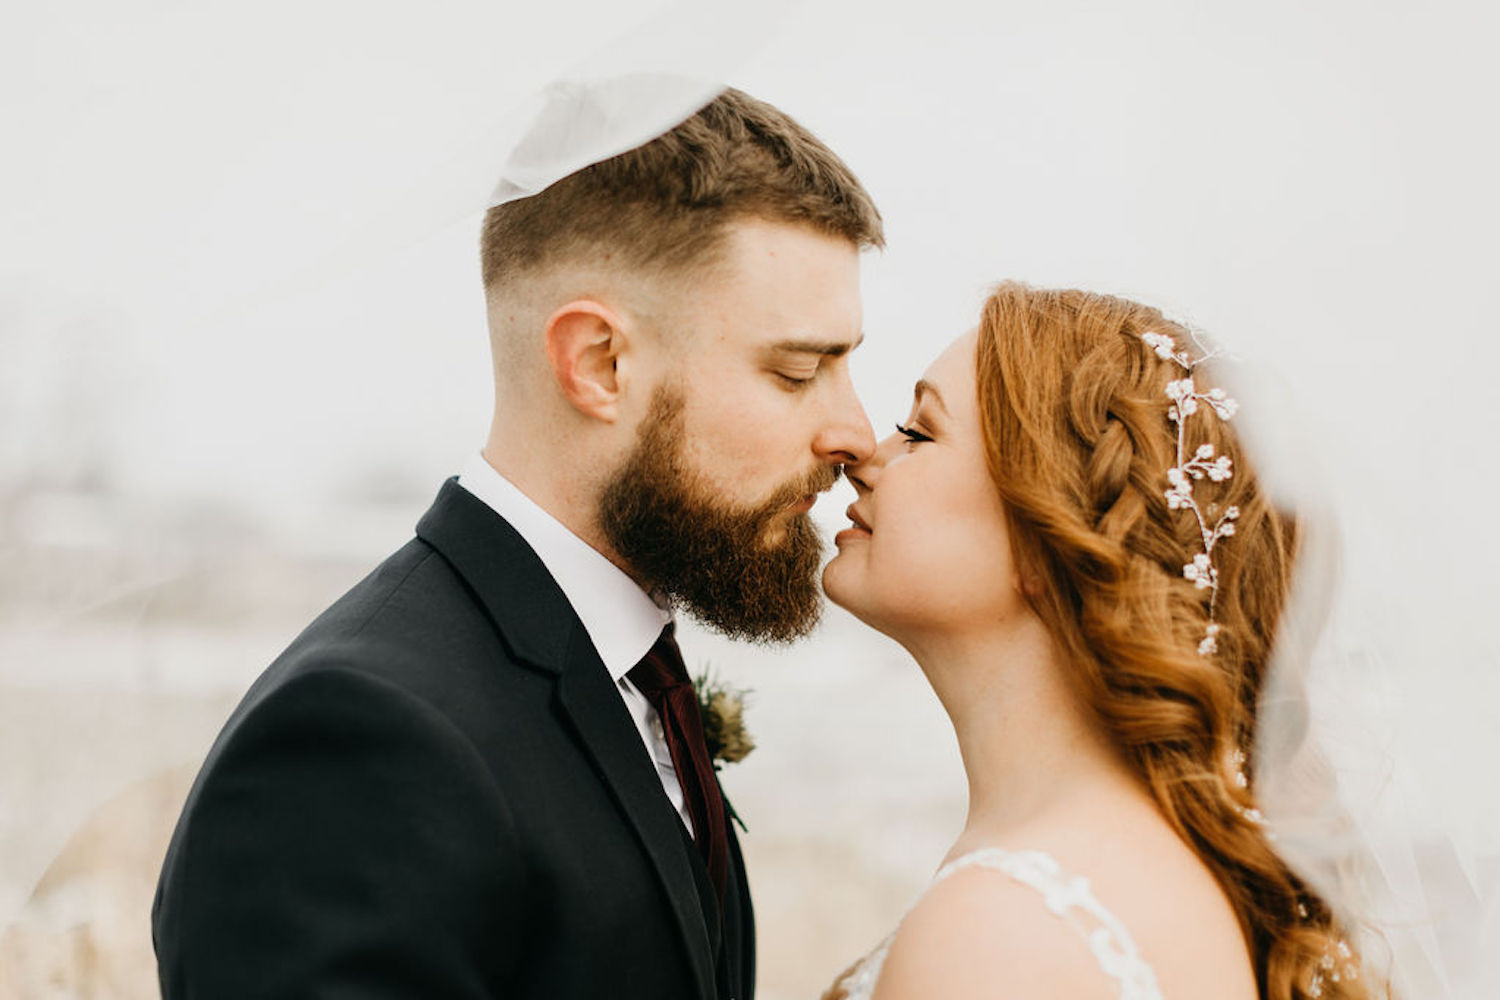 Bride and groom about to kiss at Journeyman Distillery wedding